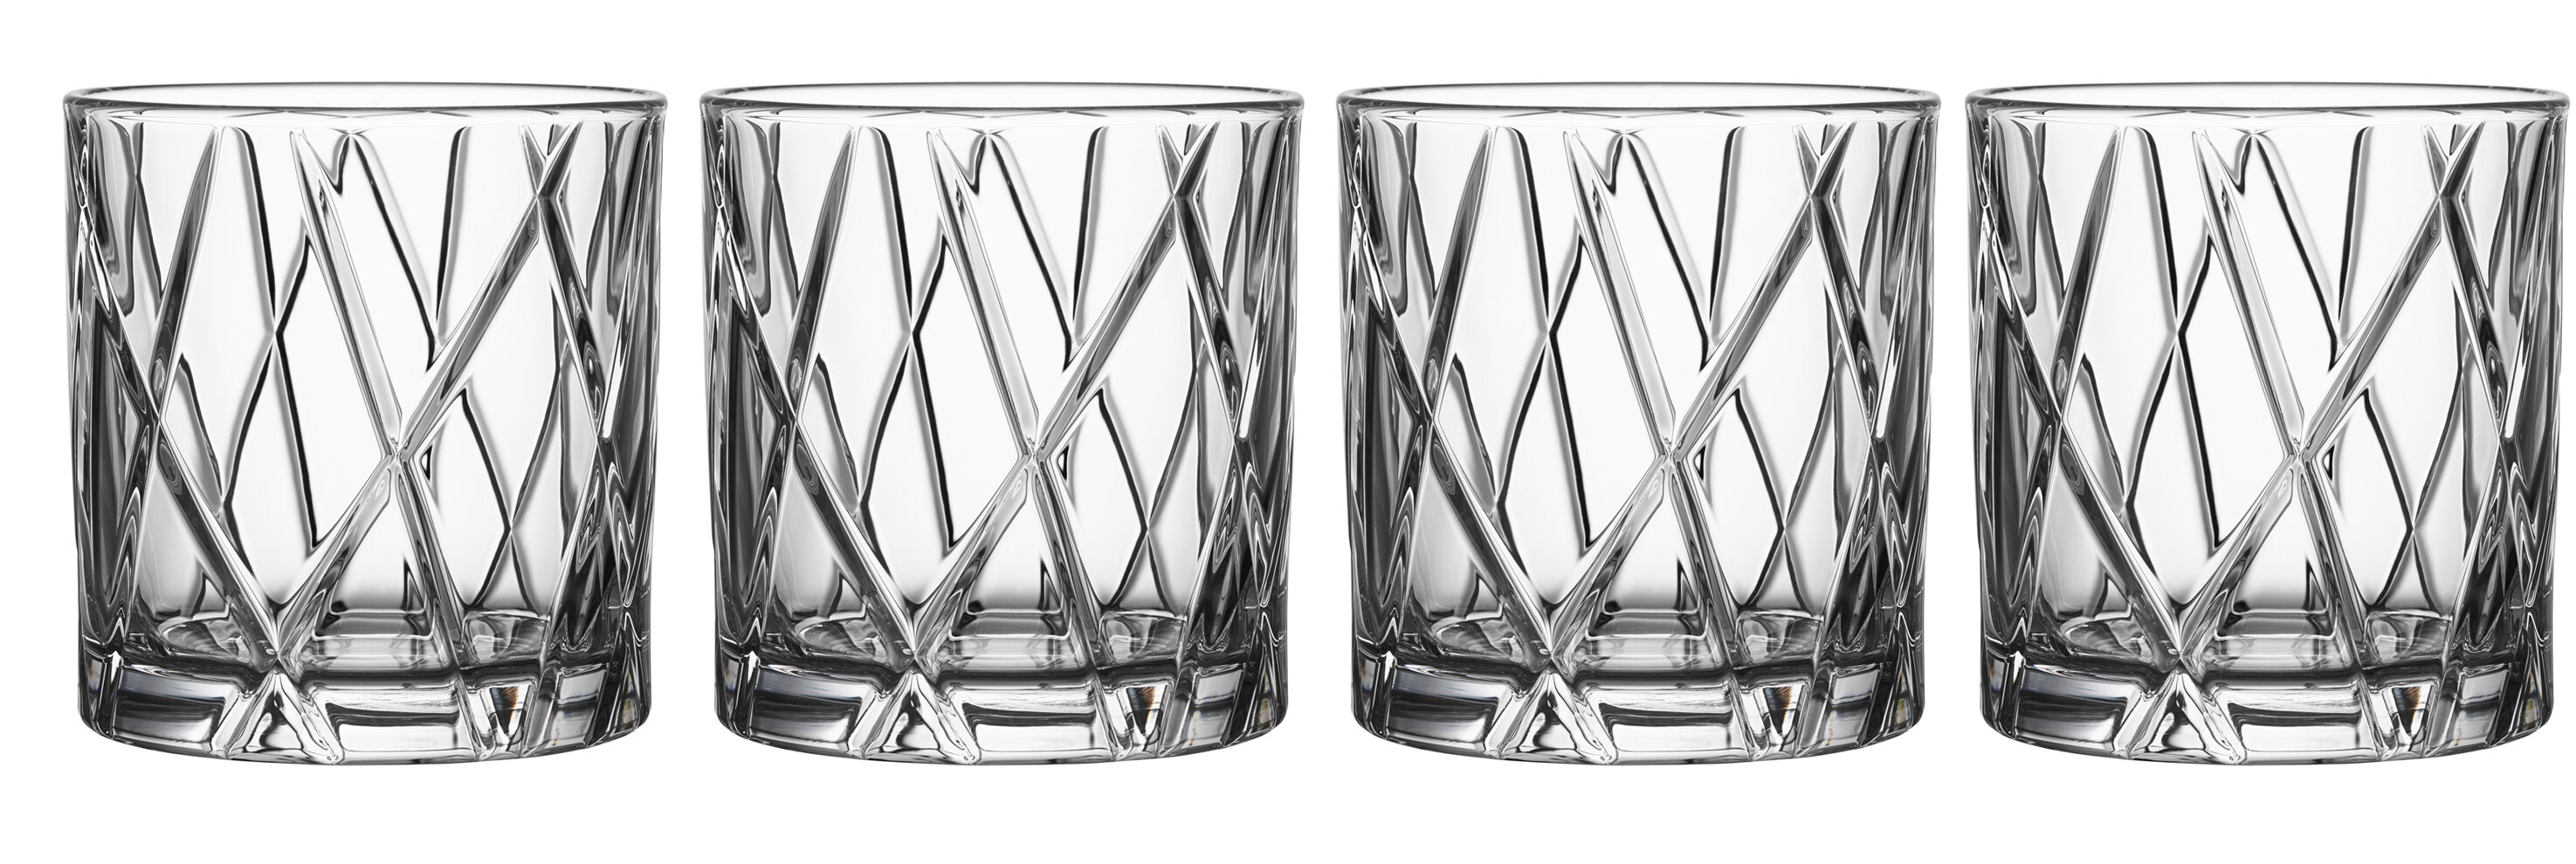 Germany Whiskey Glasses Drinkware Up To 65 Off Until 11 20 Wayfair Wayfair